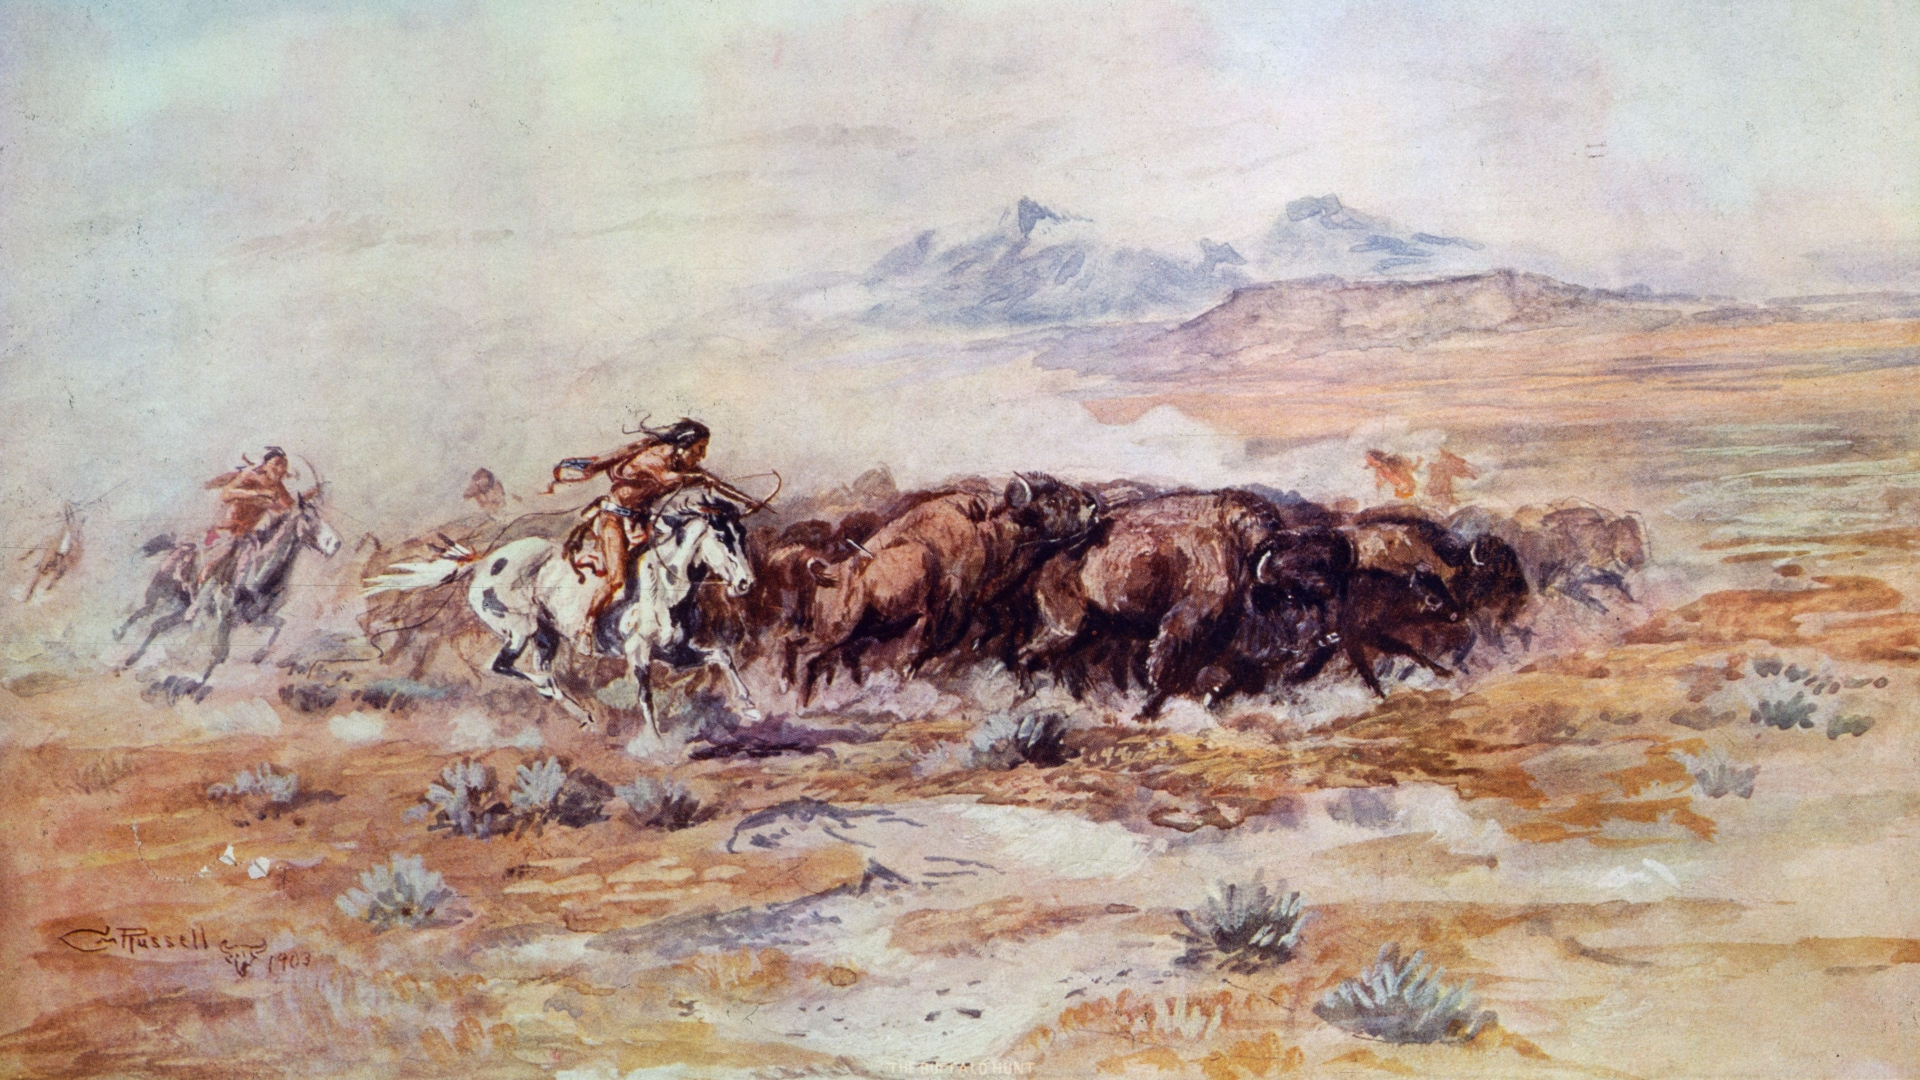 1887:  Native American hunters pursue a herd of bison across the plains. Original Artwork: Painting by Charles Marion Russell.  (Photo by MPI/Getty Images)